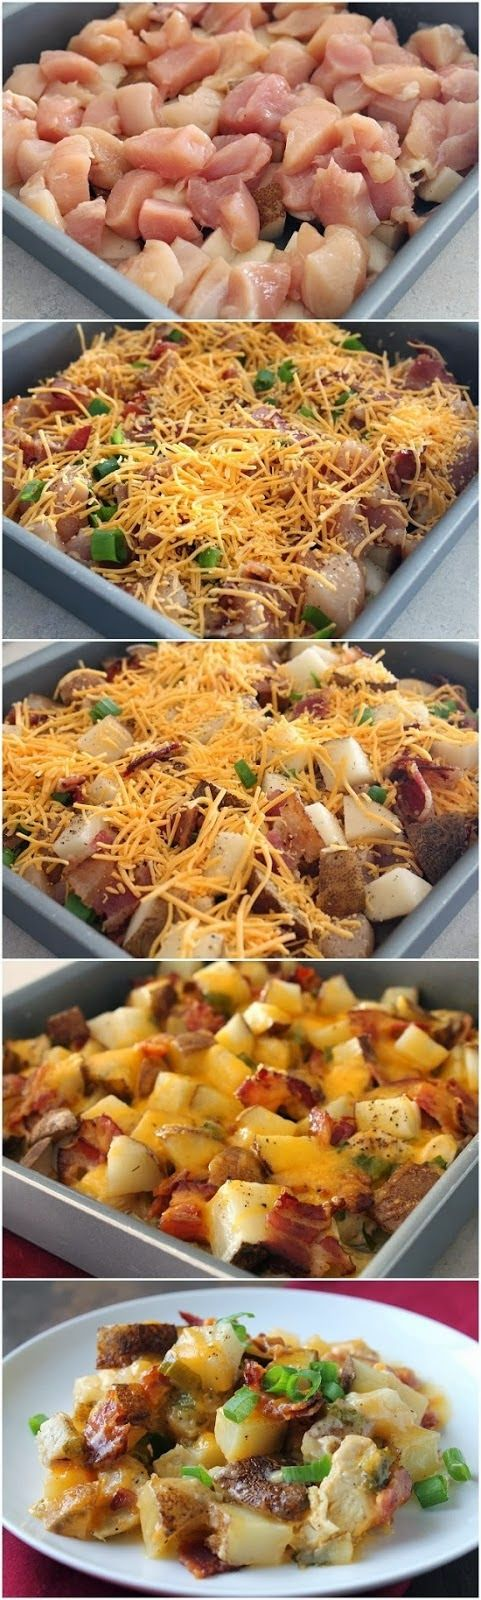 Ingredients : 3 - 4 medium russet potatoes, scrubbed and diced (about 1.5 lbs. or 4 1/2 cups) 1 lb. boneless, skinless chicken br...